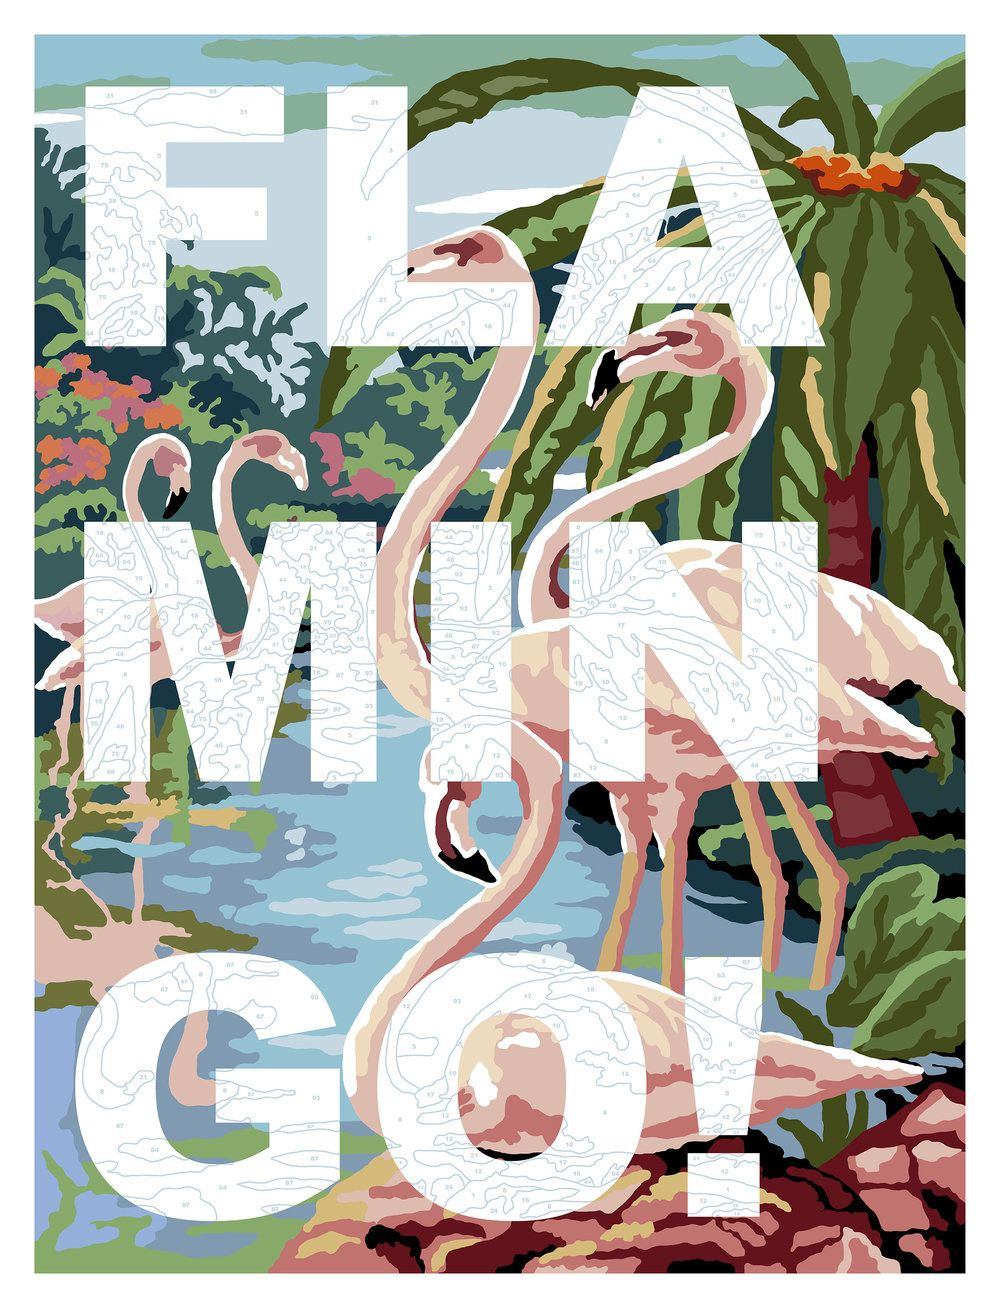 FLAMINGO! Limited Edition Screen Print (edition of 50) 56 x 76 cm 2016 This artwork is available to buy exlusively through Print Club London